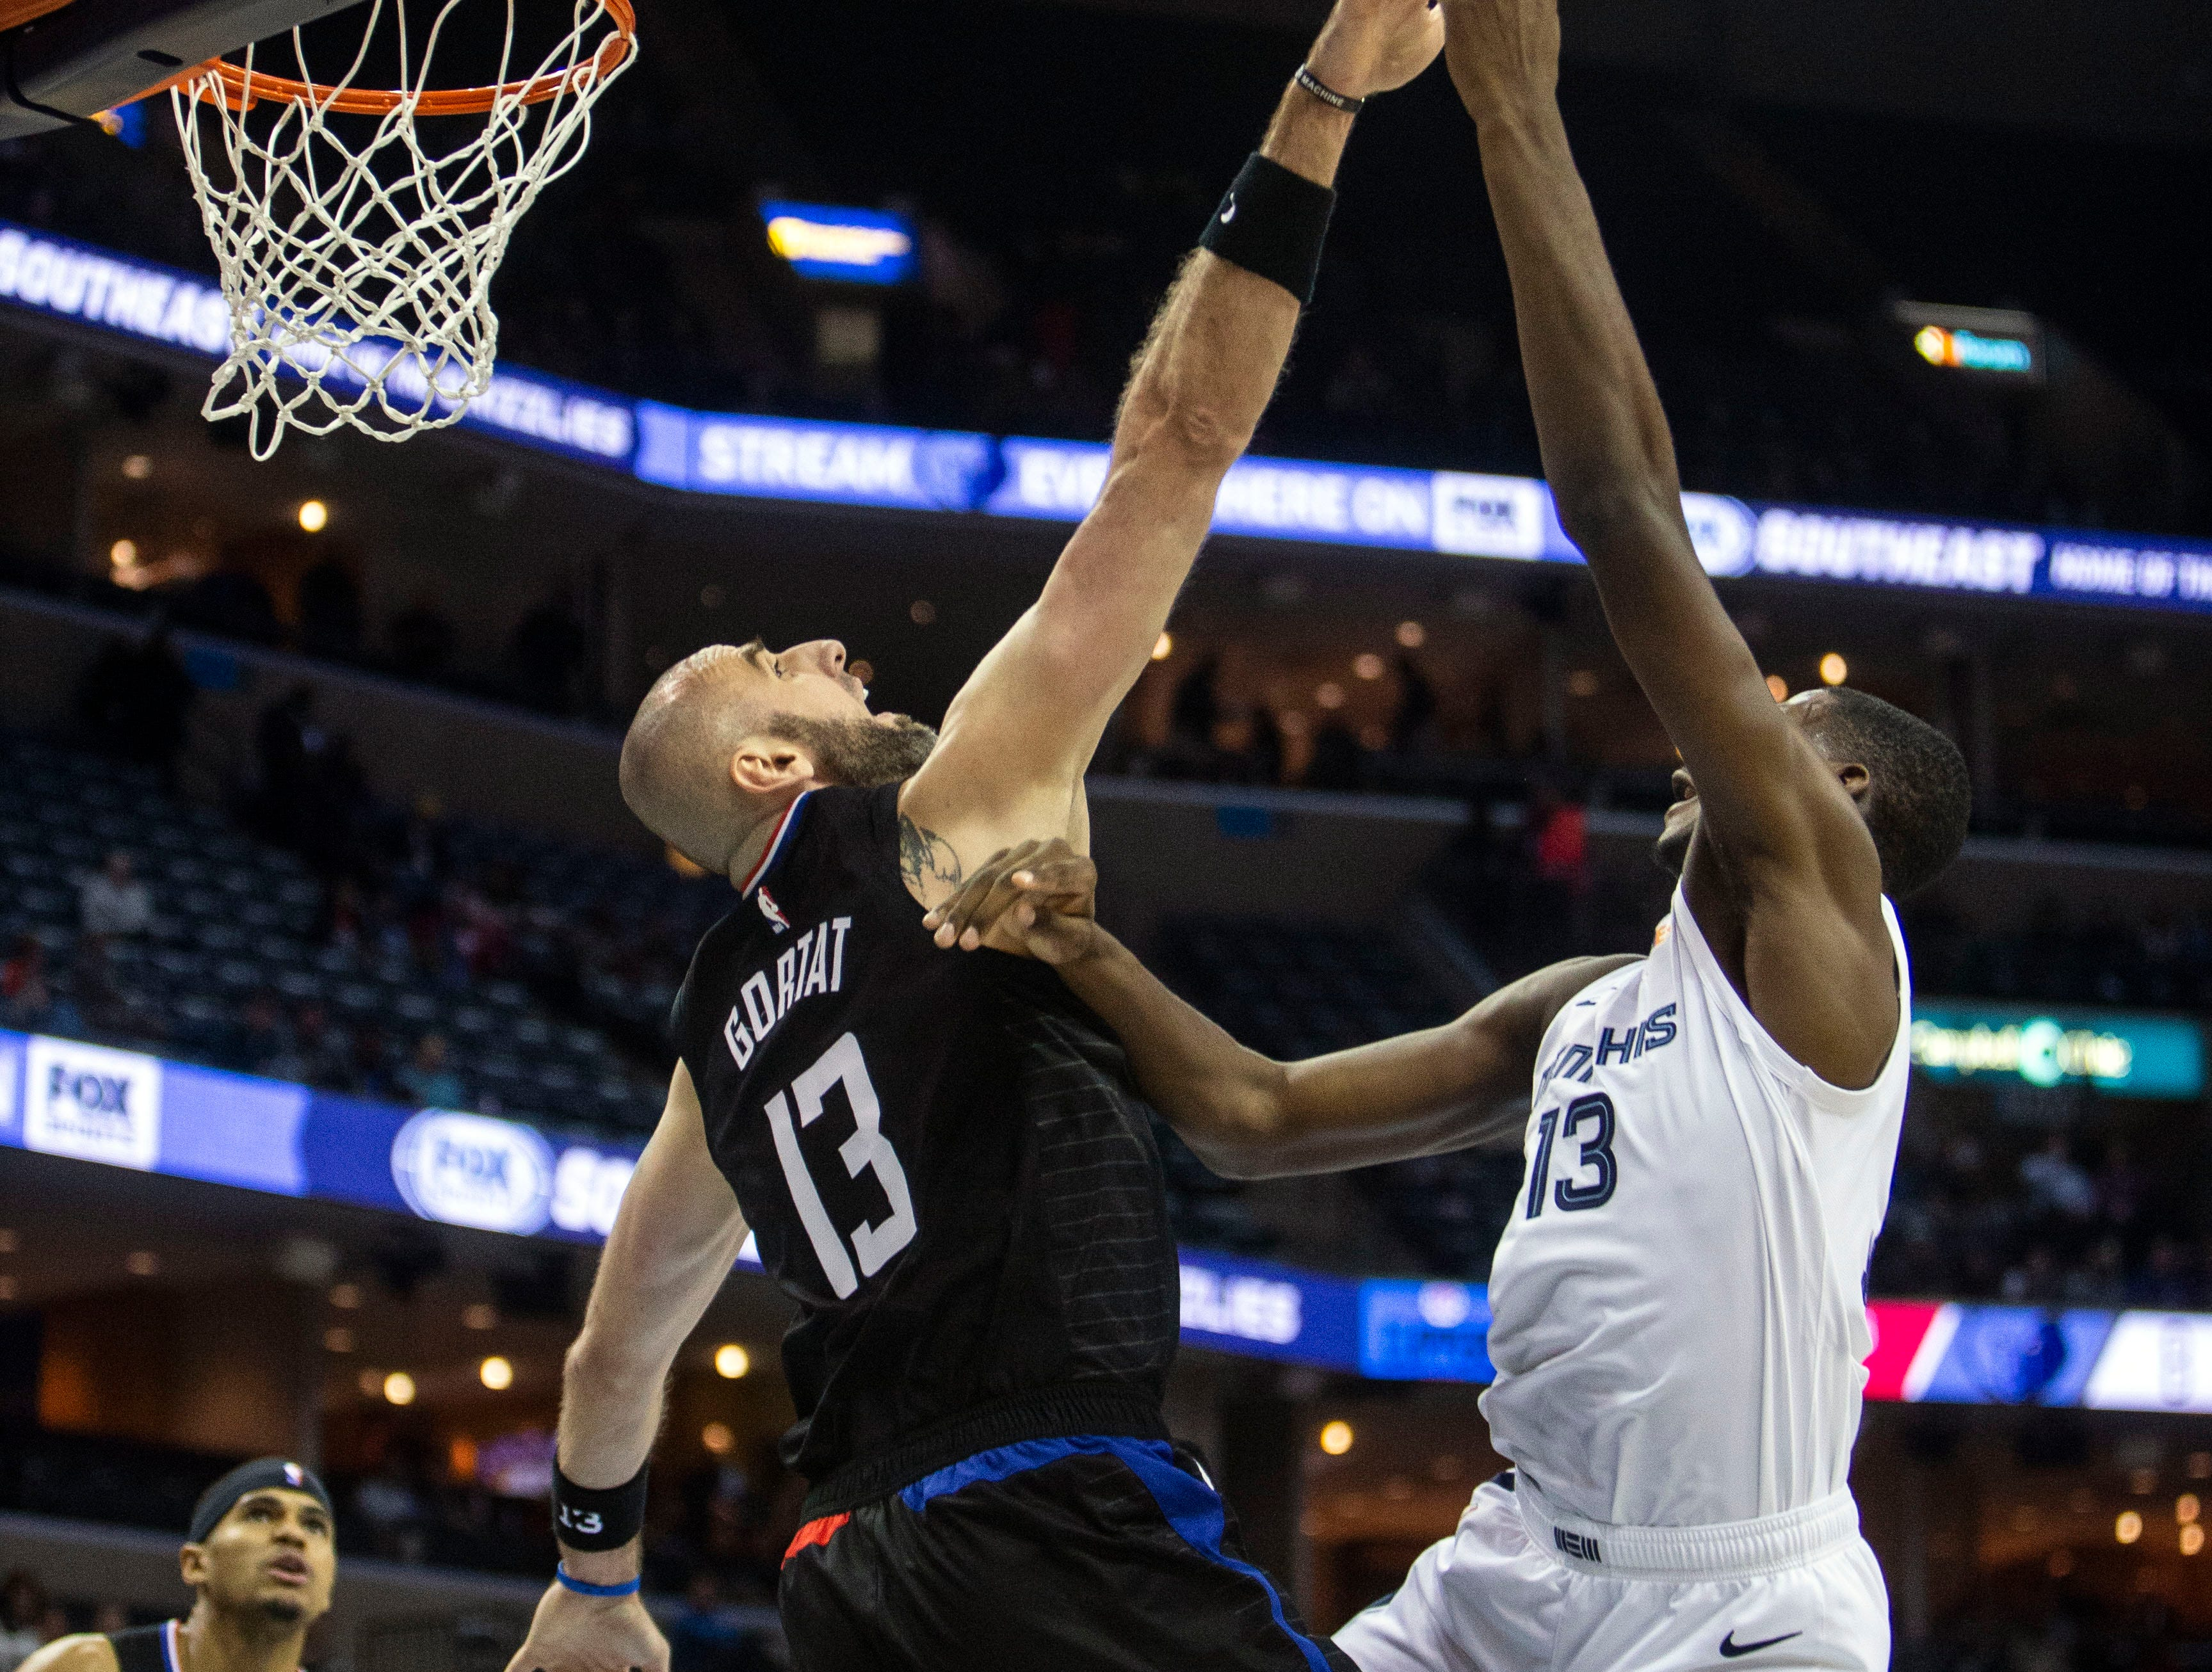 Memphis Grizzles forward Jaren Jackson Jr. (13) shoots over  Los Angeles Clippers Marcin Gortat (13) during the first half of a NBA basketball game between the Memphis Grizzlies and the  Los Angeles Clippers in the Fedex Forum, Wednesday, Dec. 5, 2018.